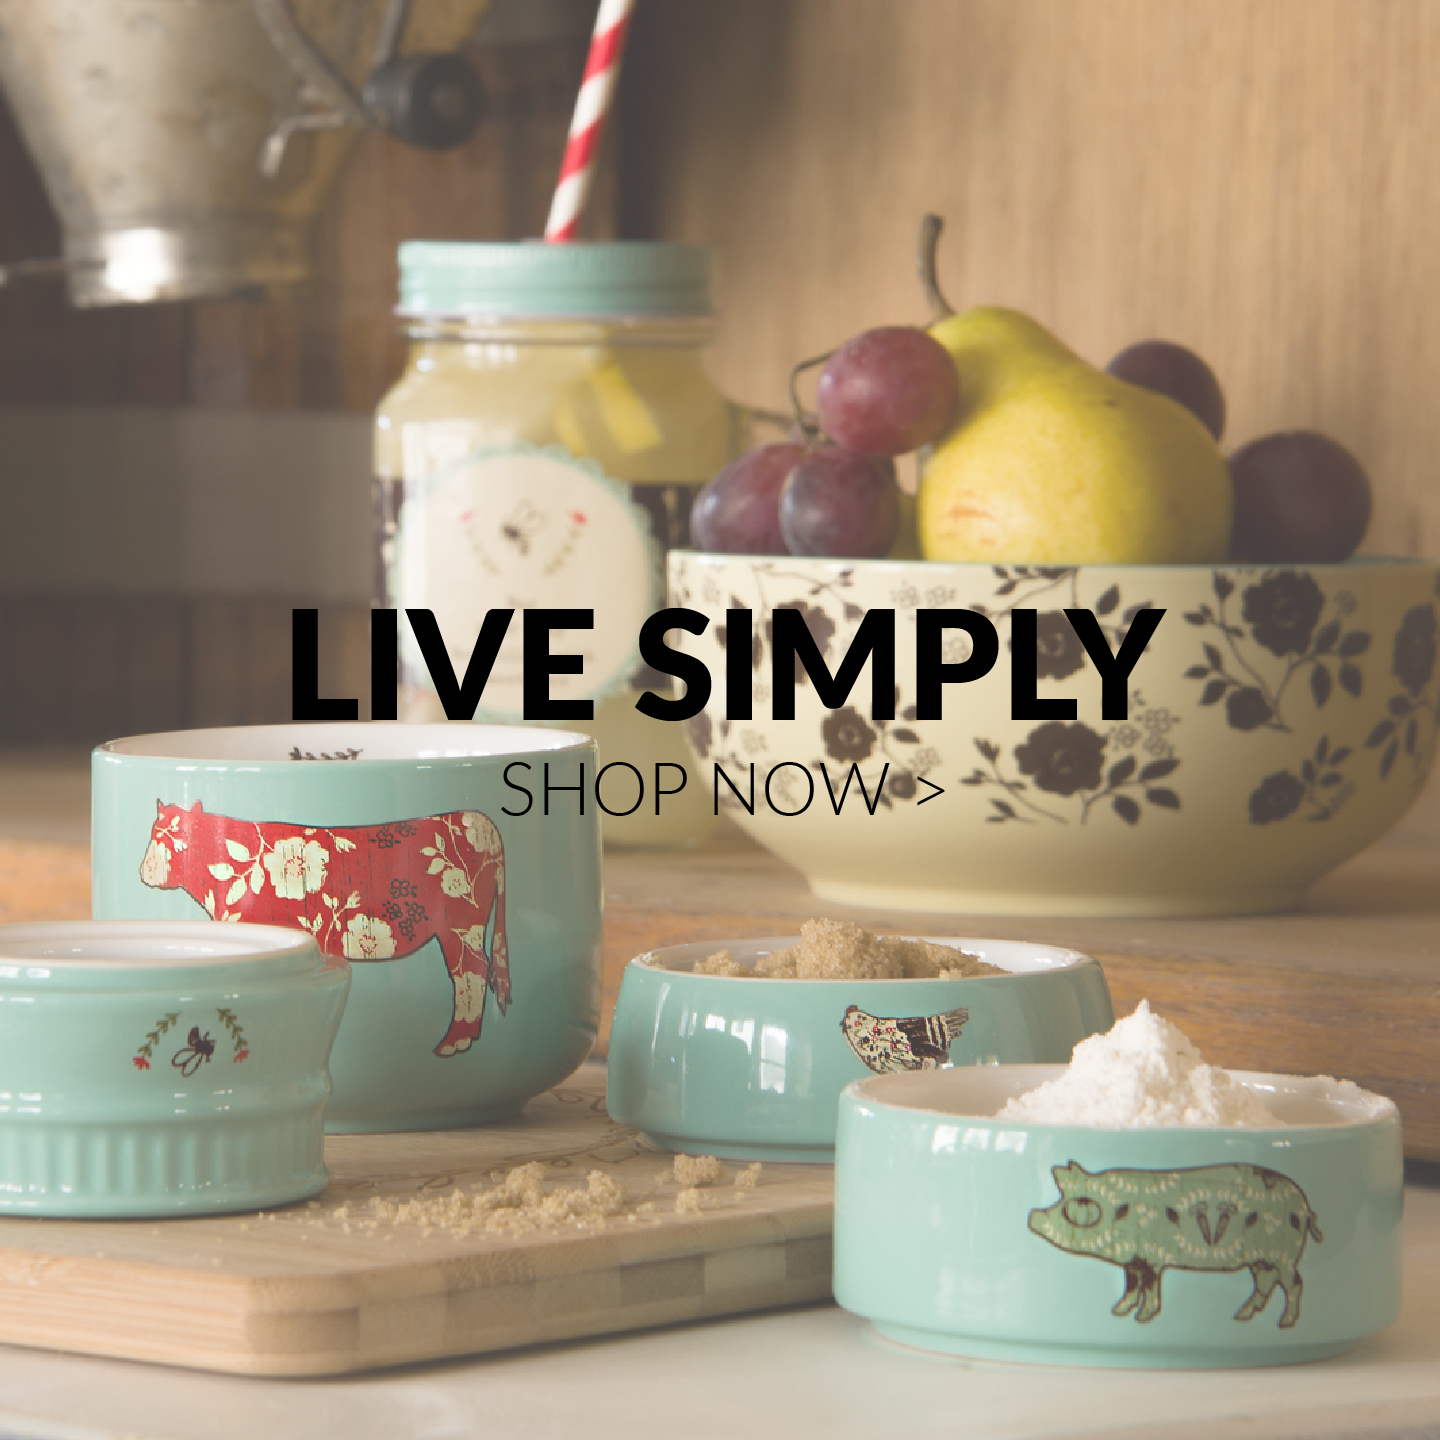 Live Simply by Amylee Weeks